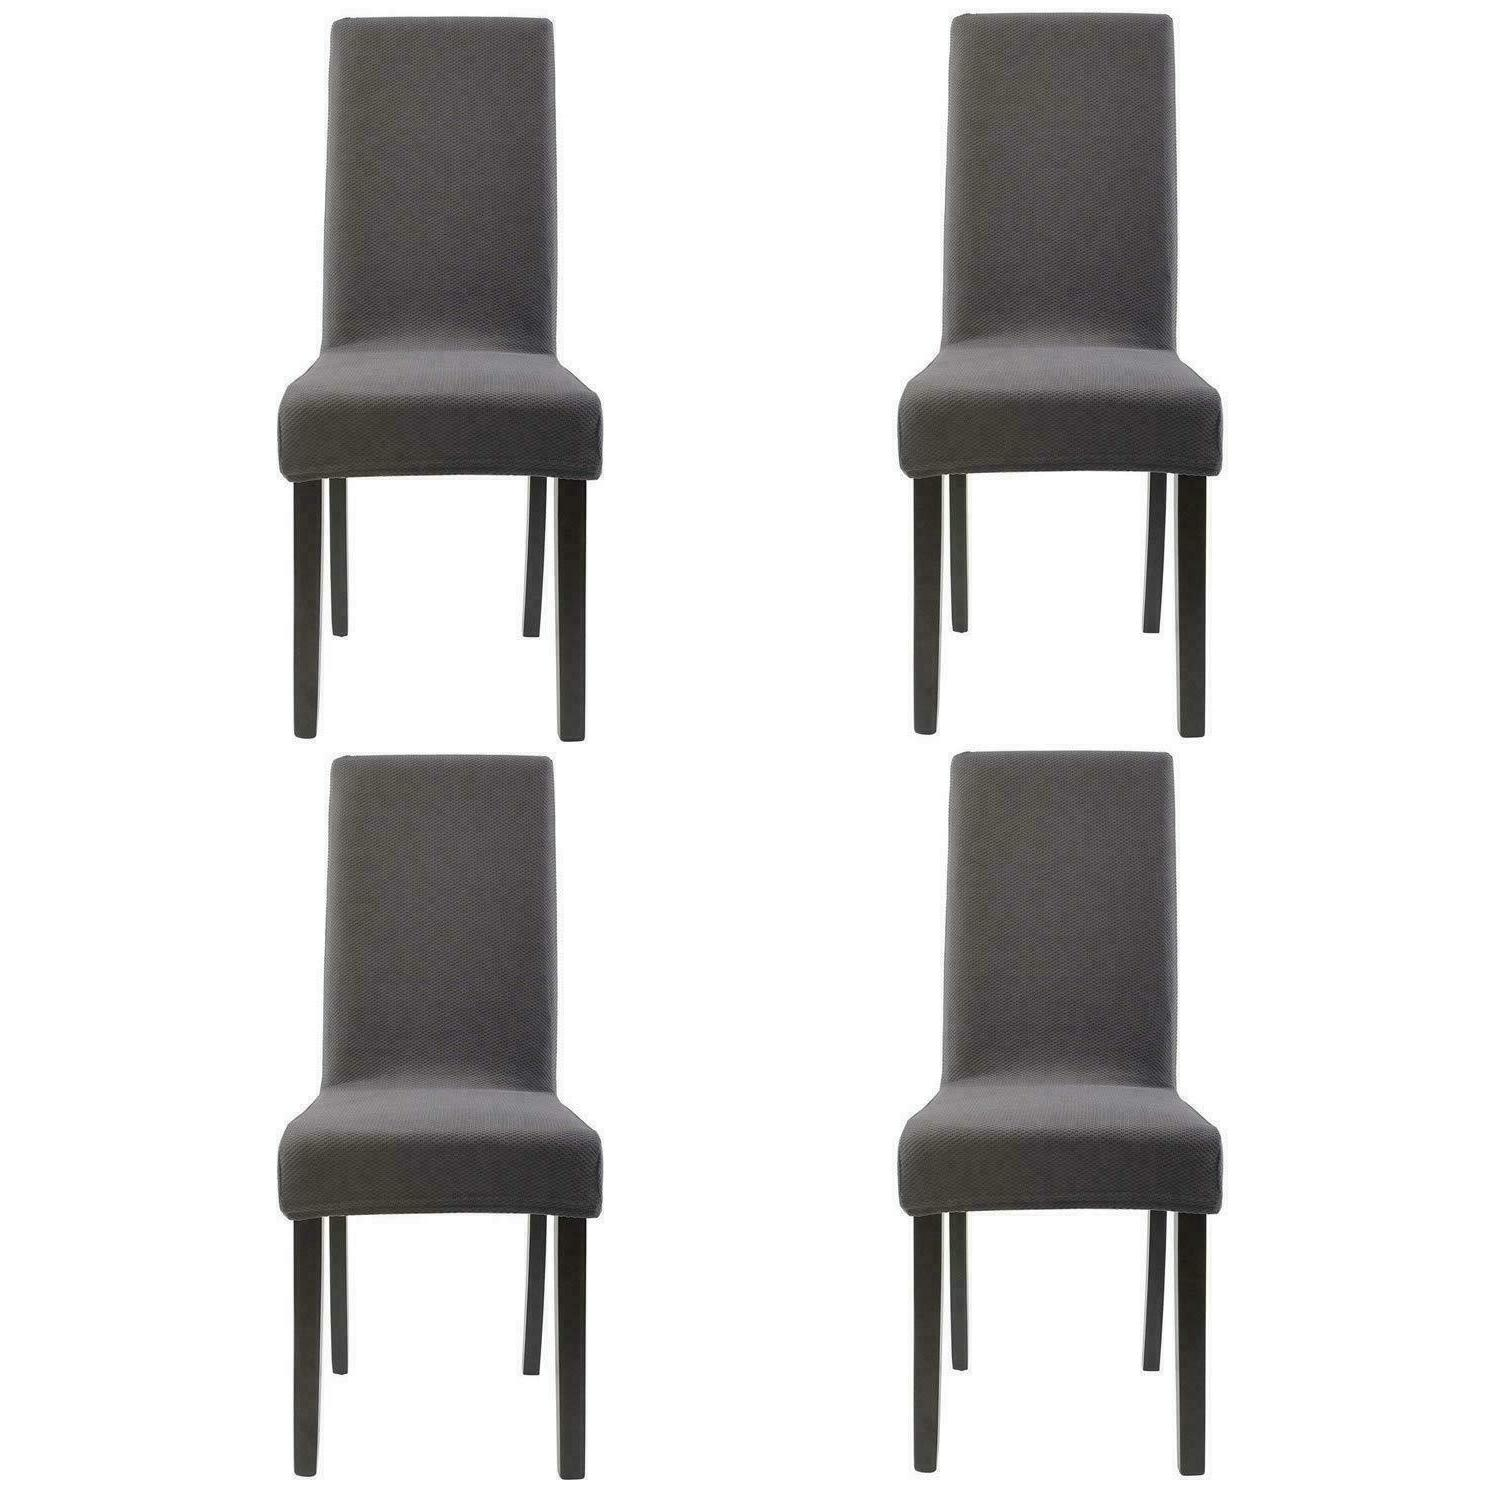 knit spandex stretch dining room chair slipcovers